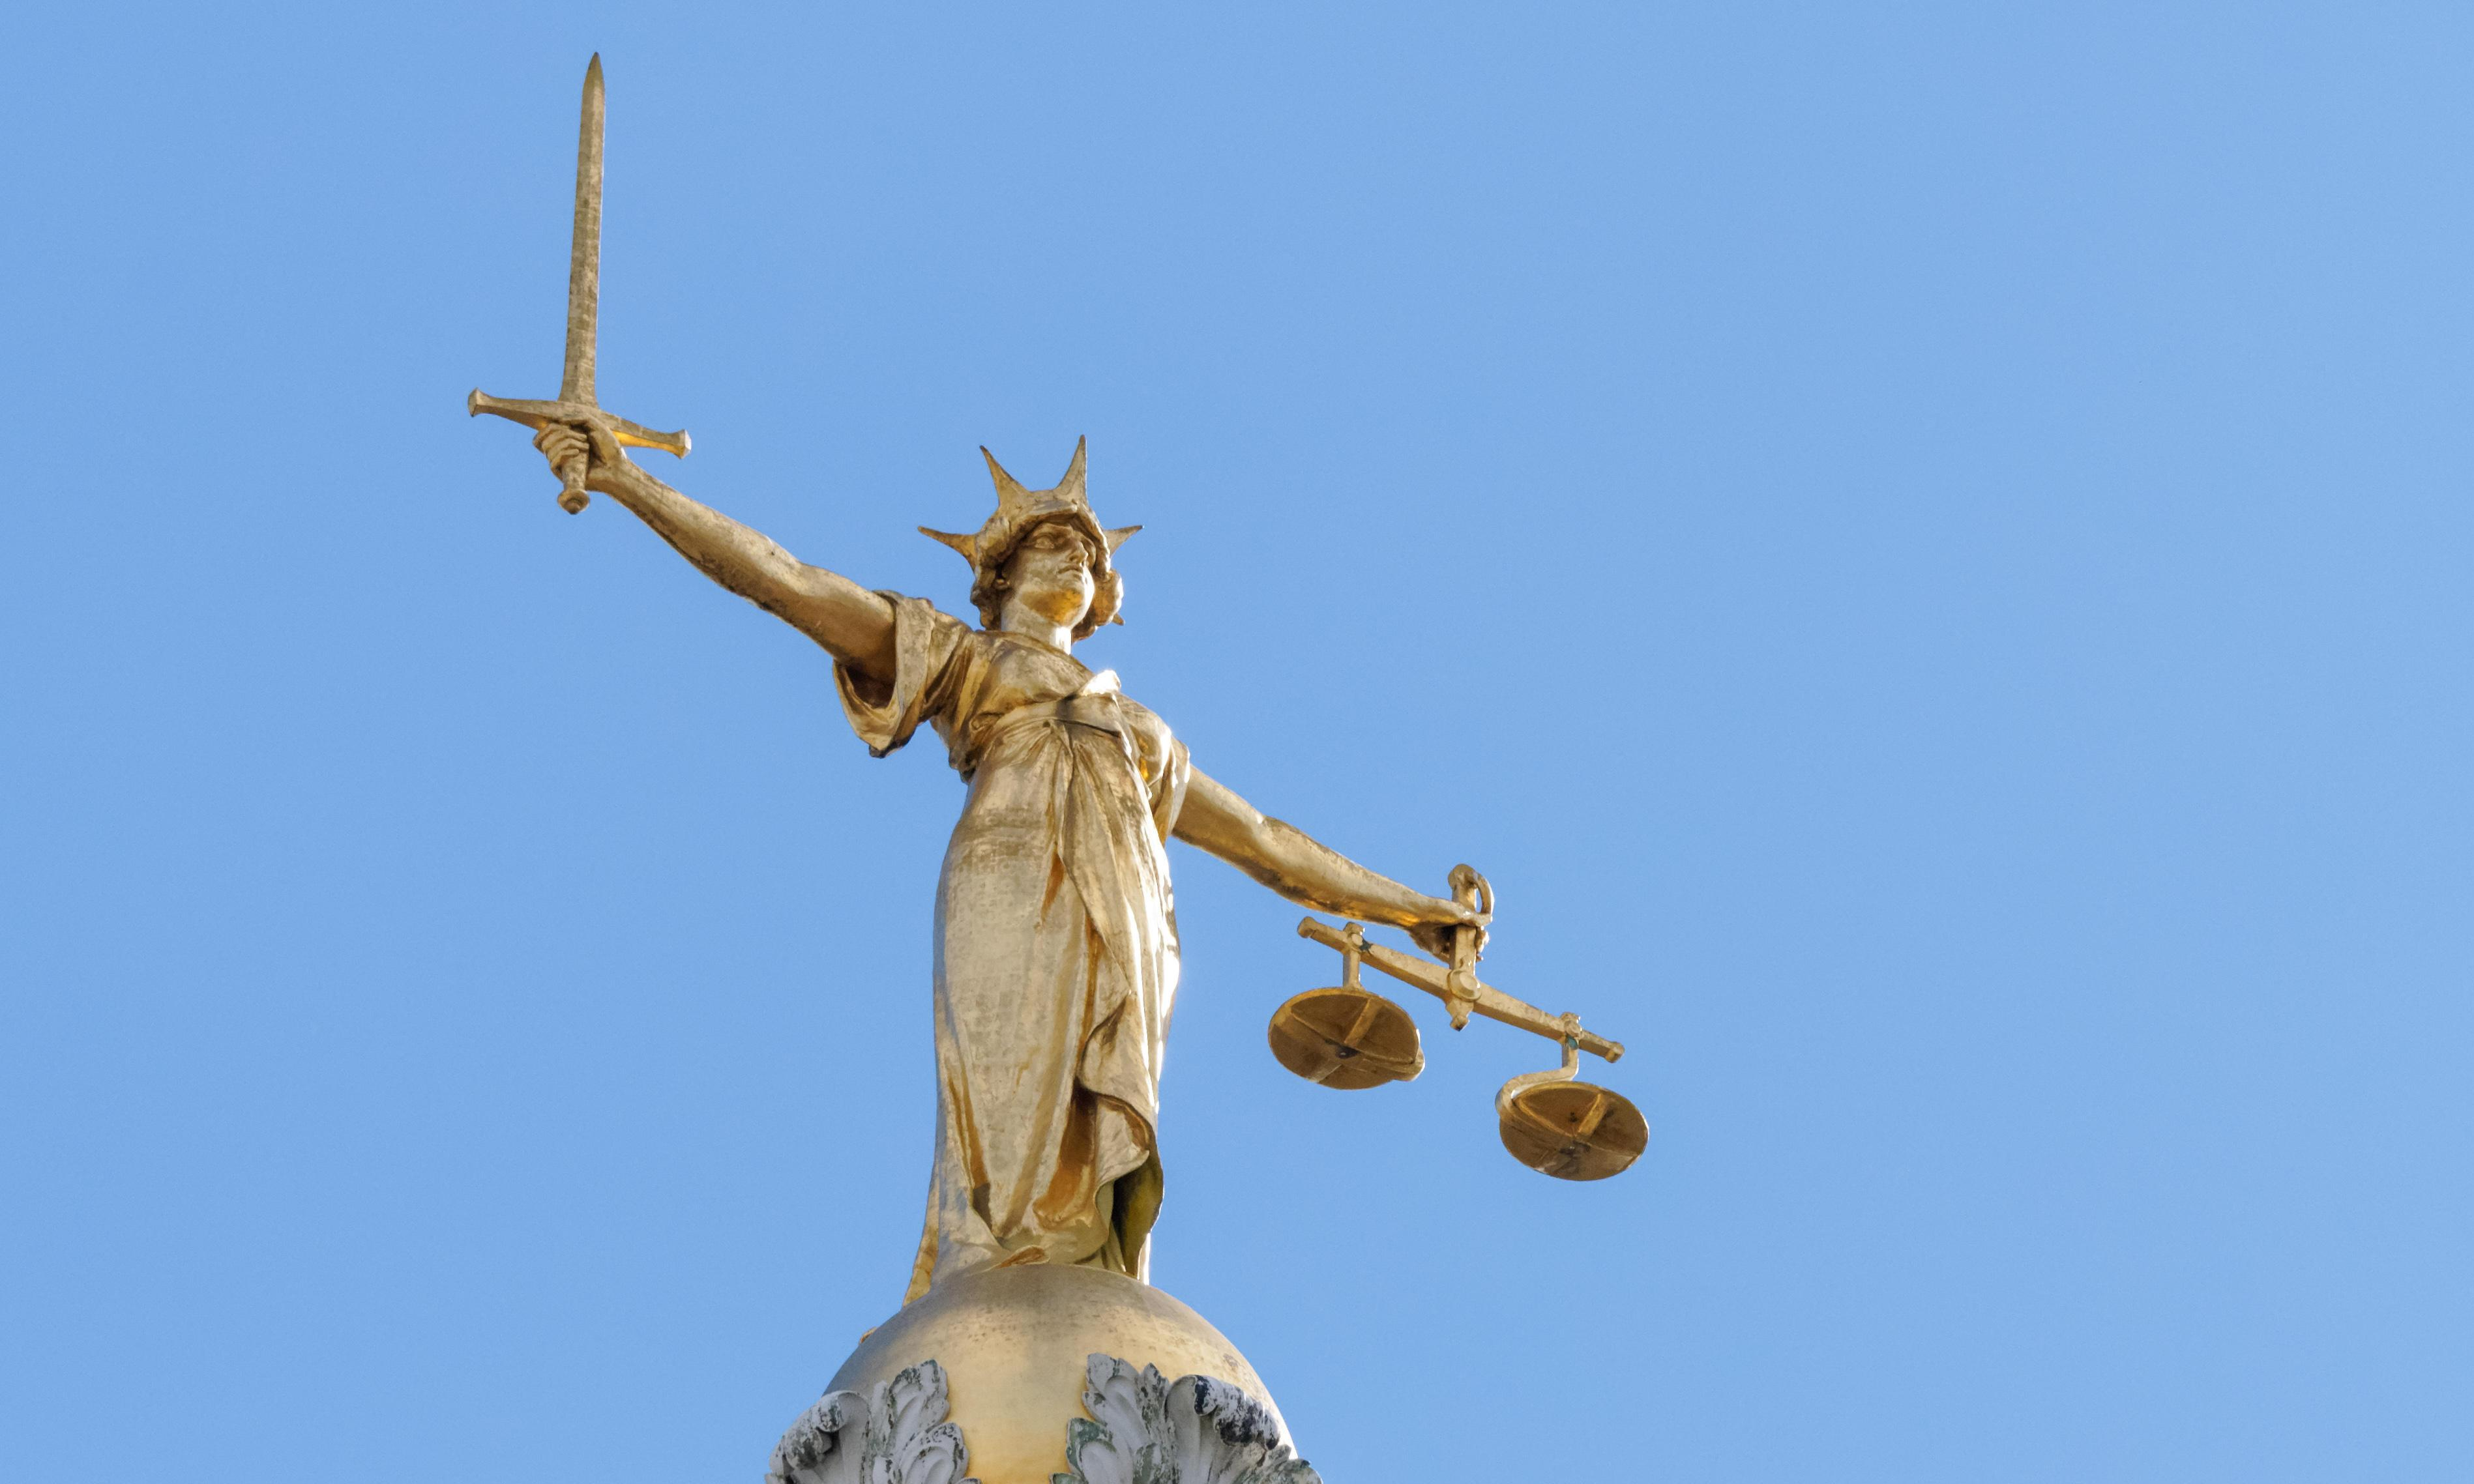 Southampton student feared she would die during rape, jury told